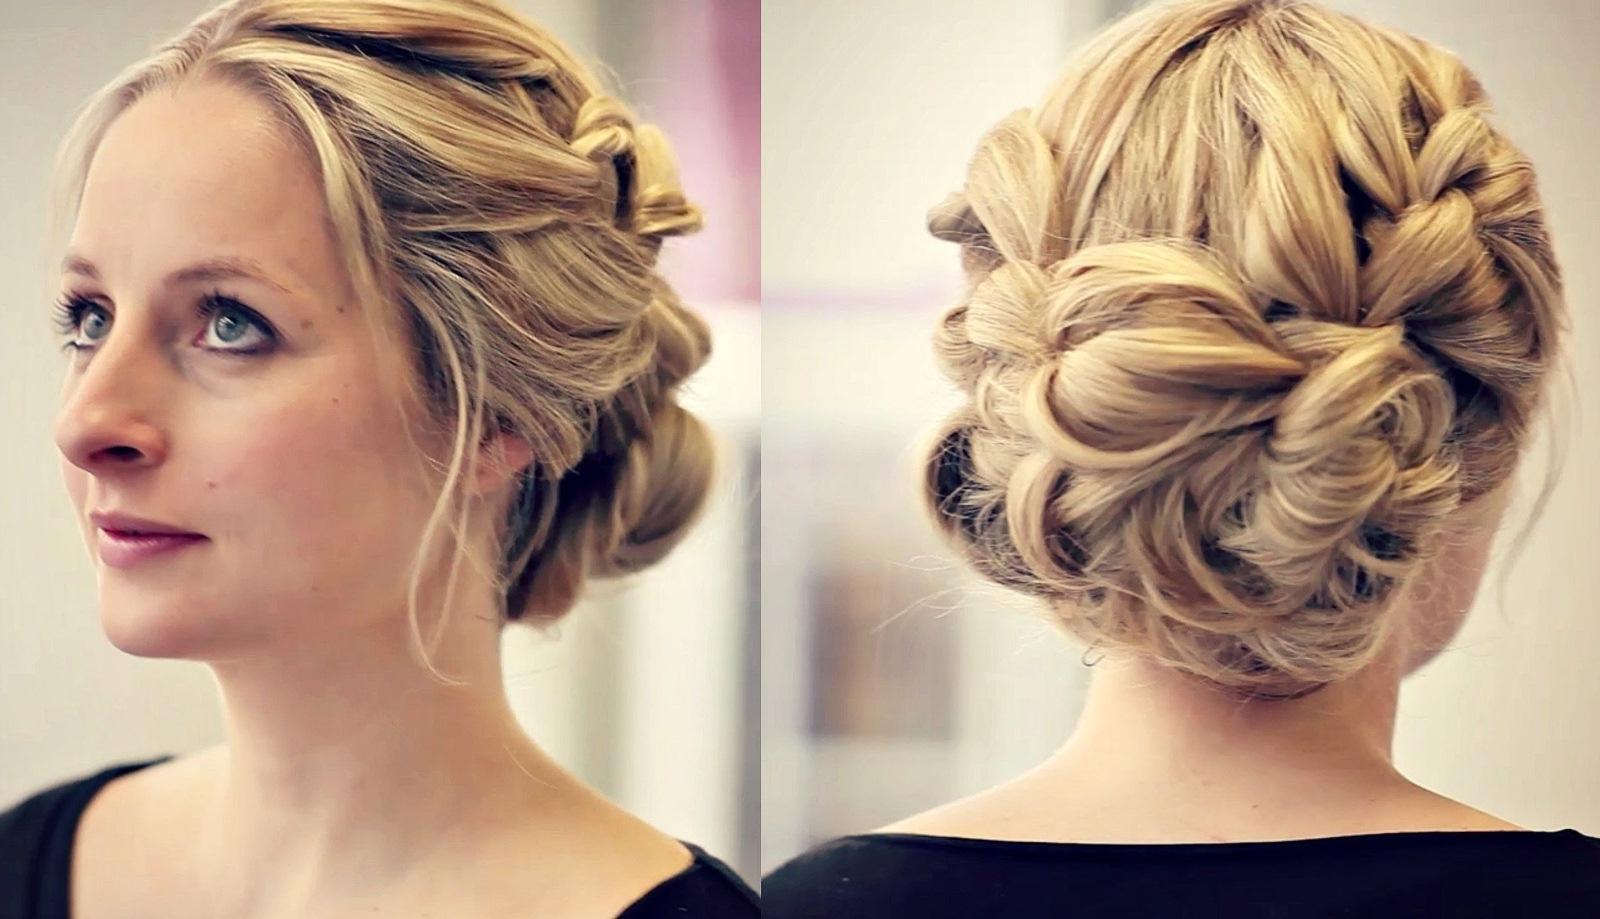 Fashionable Mother Of The Bride Updo Wedding Hairstyles With Updo Hairstyles For Weddings Mother Of The Bride – Hairstyle For (View 10 of 15)